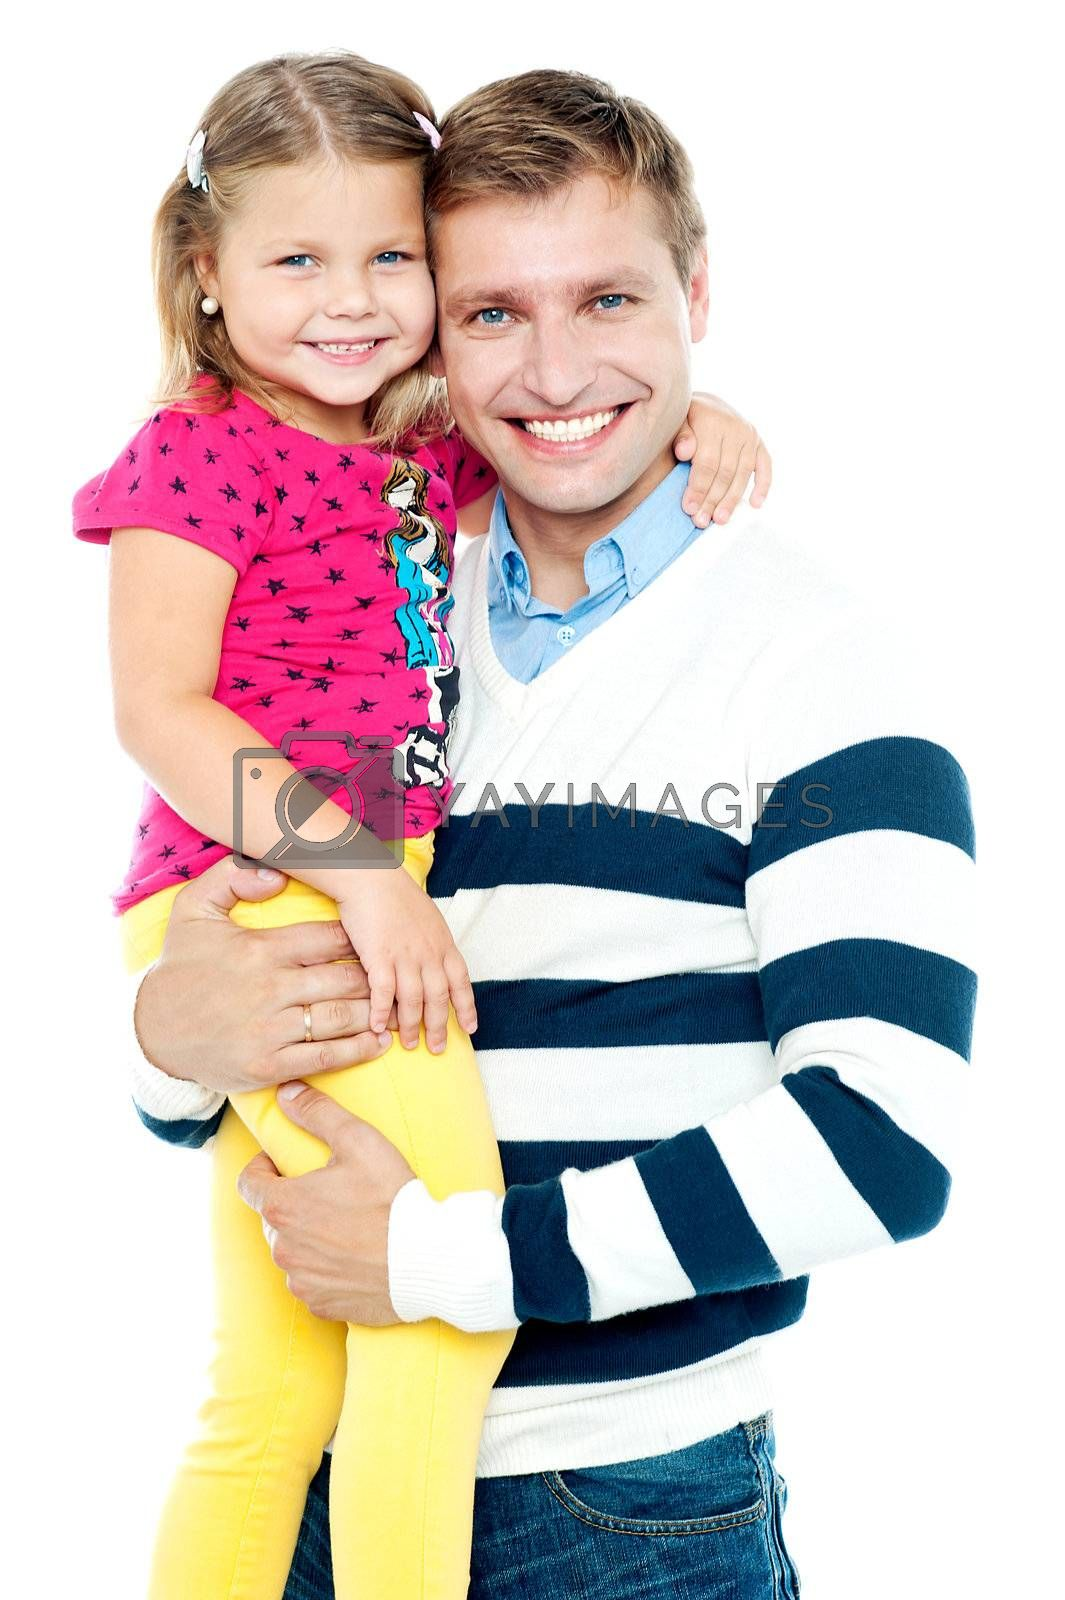 Father and daughter. Studio shot. Smiling